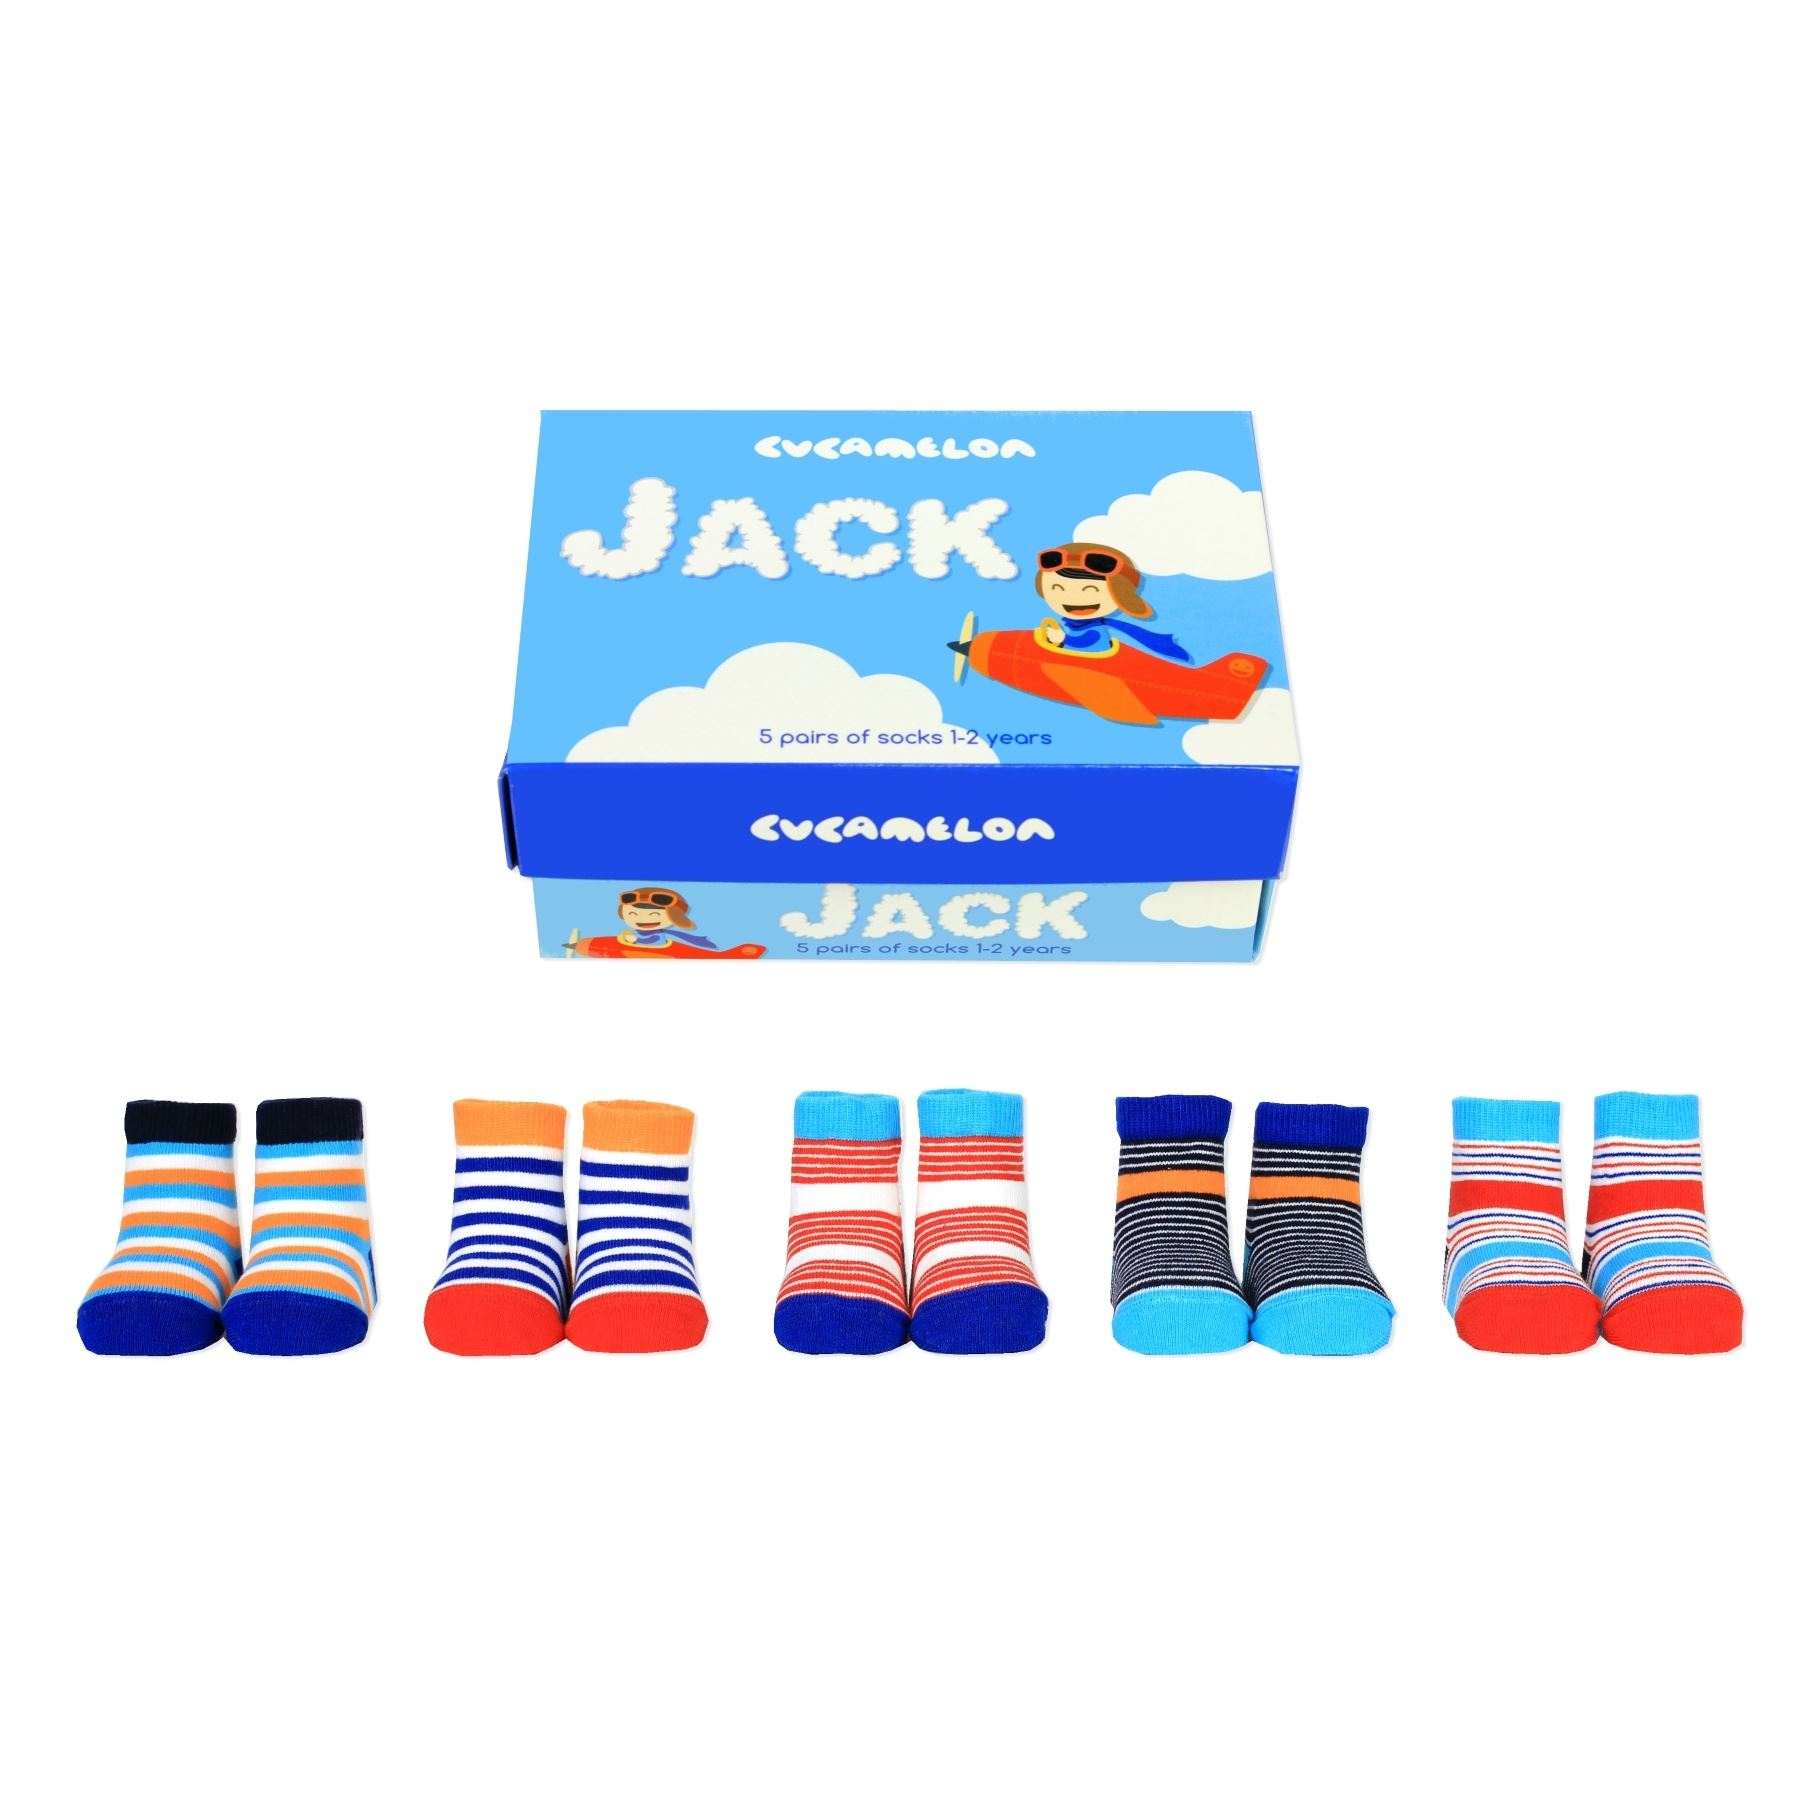 Details about Cucamelon Jack the Pilot 5 Pairs of Striped Socks 1-2 Years  Toddler Gift Boxed